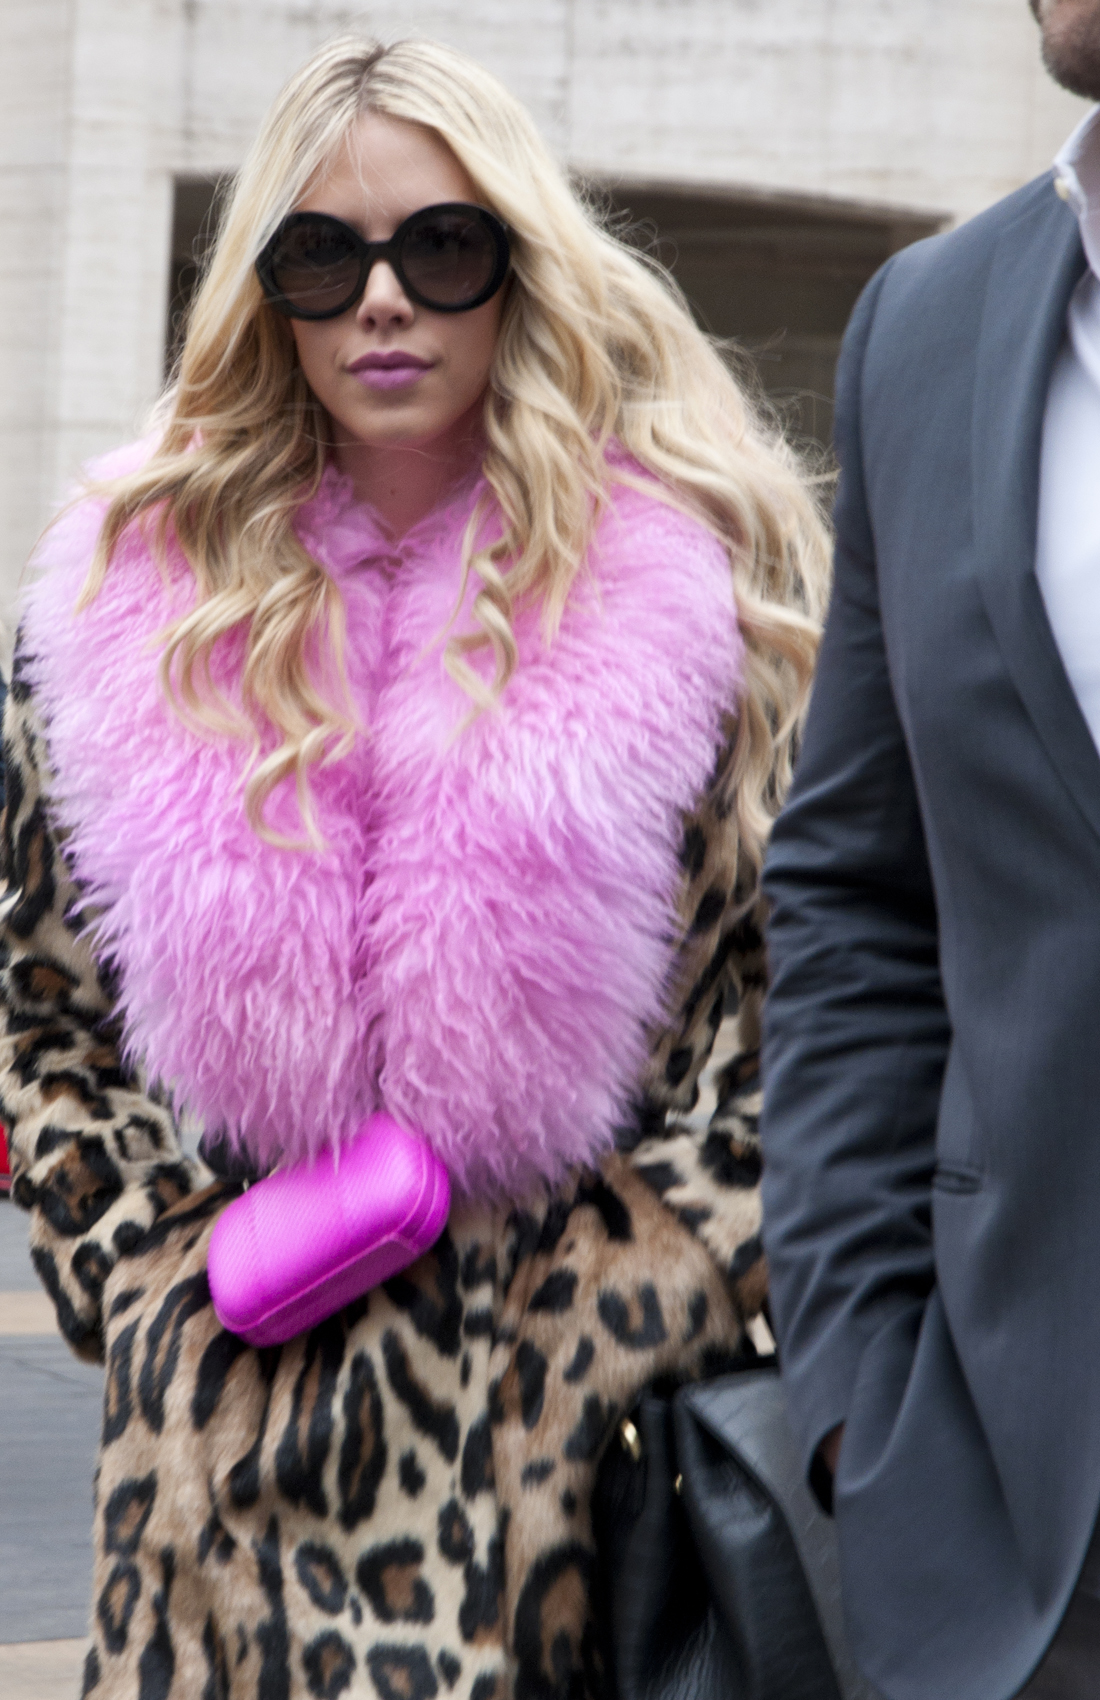 Kier Mellour wearingDVF - hot pink contrasting with cheetah print